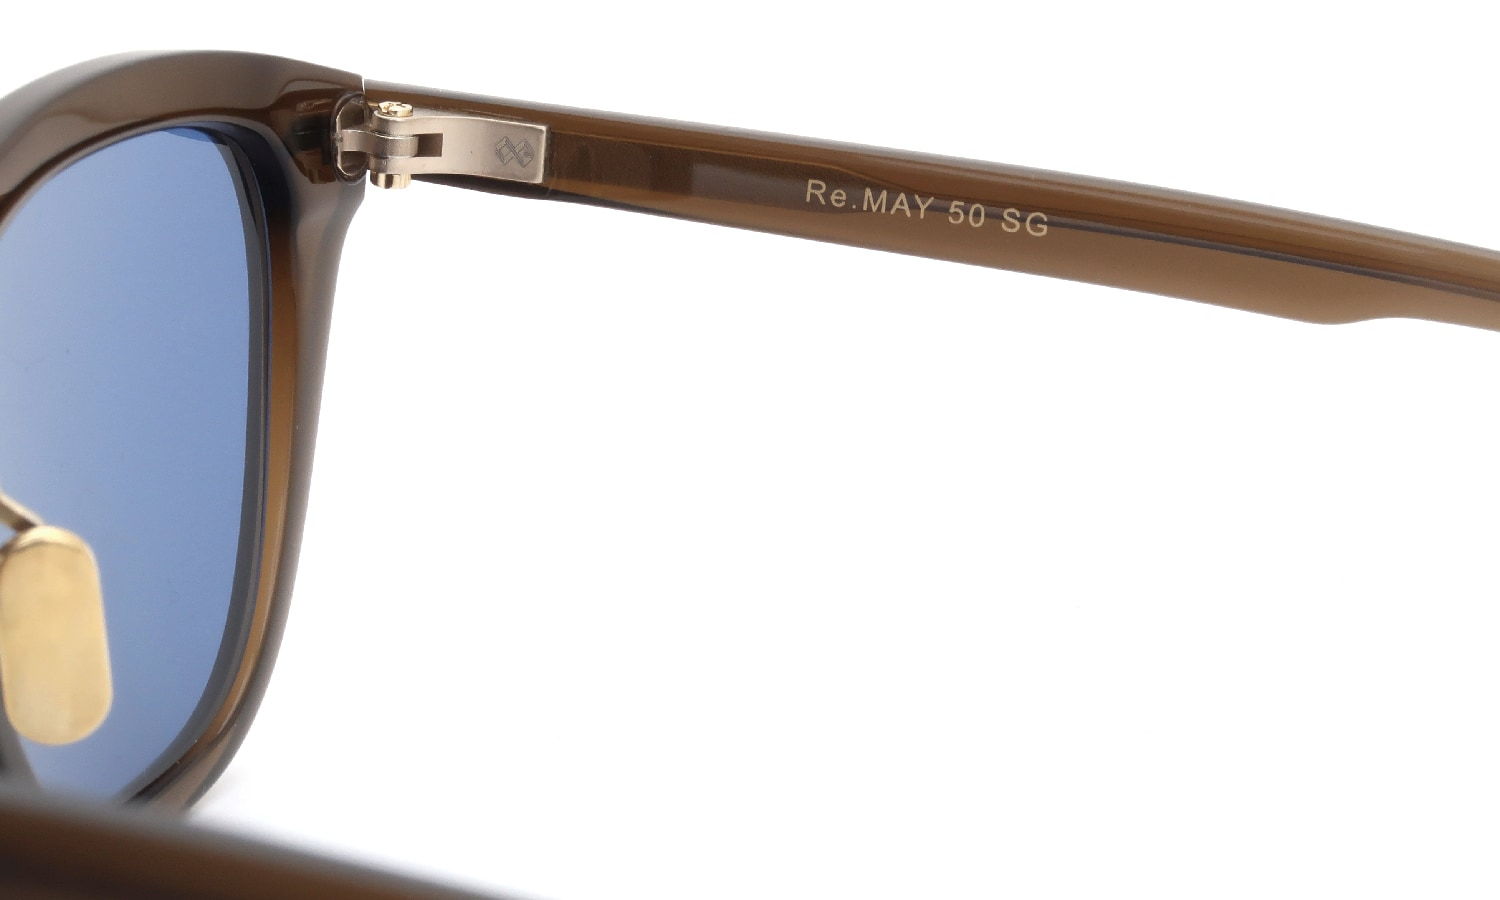 OG × OLIVER GOLDSMITH Re:MAY 50 SG リ:メイ 11